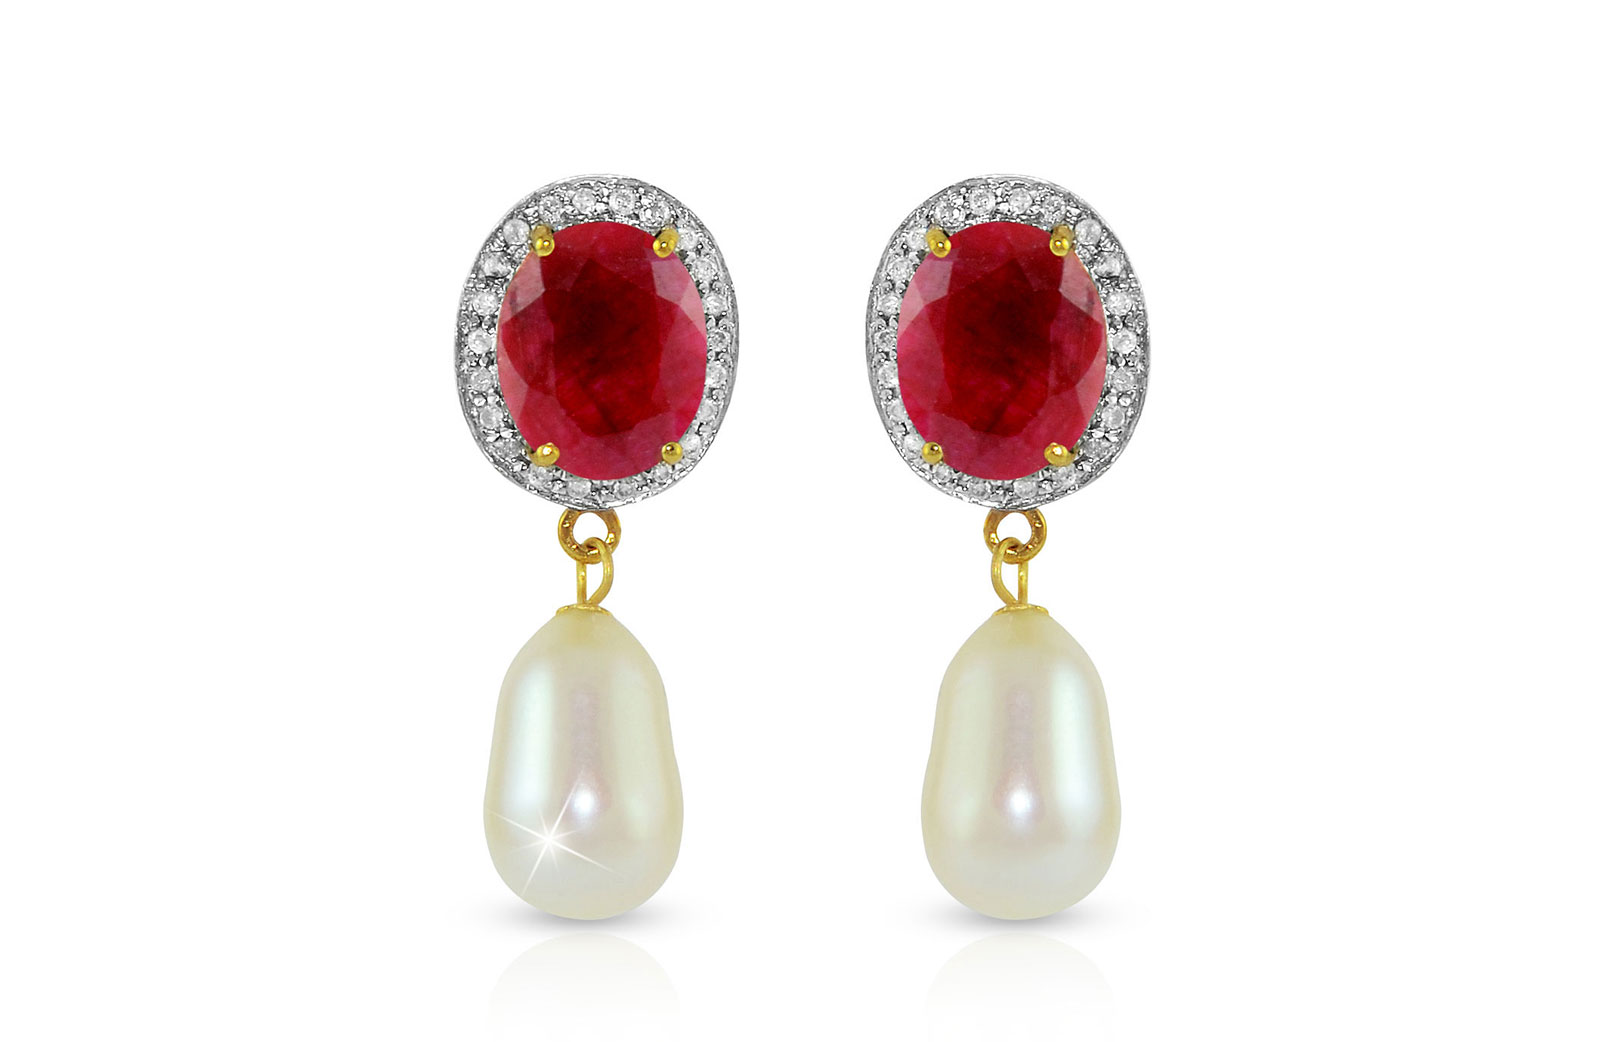 Vera Perla 18K Gold 0.24ct. Diamonds, Oval Ruby & Pearl Earrings